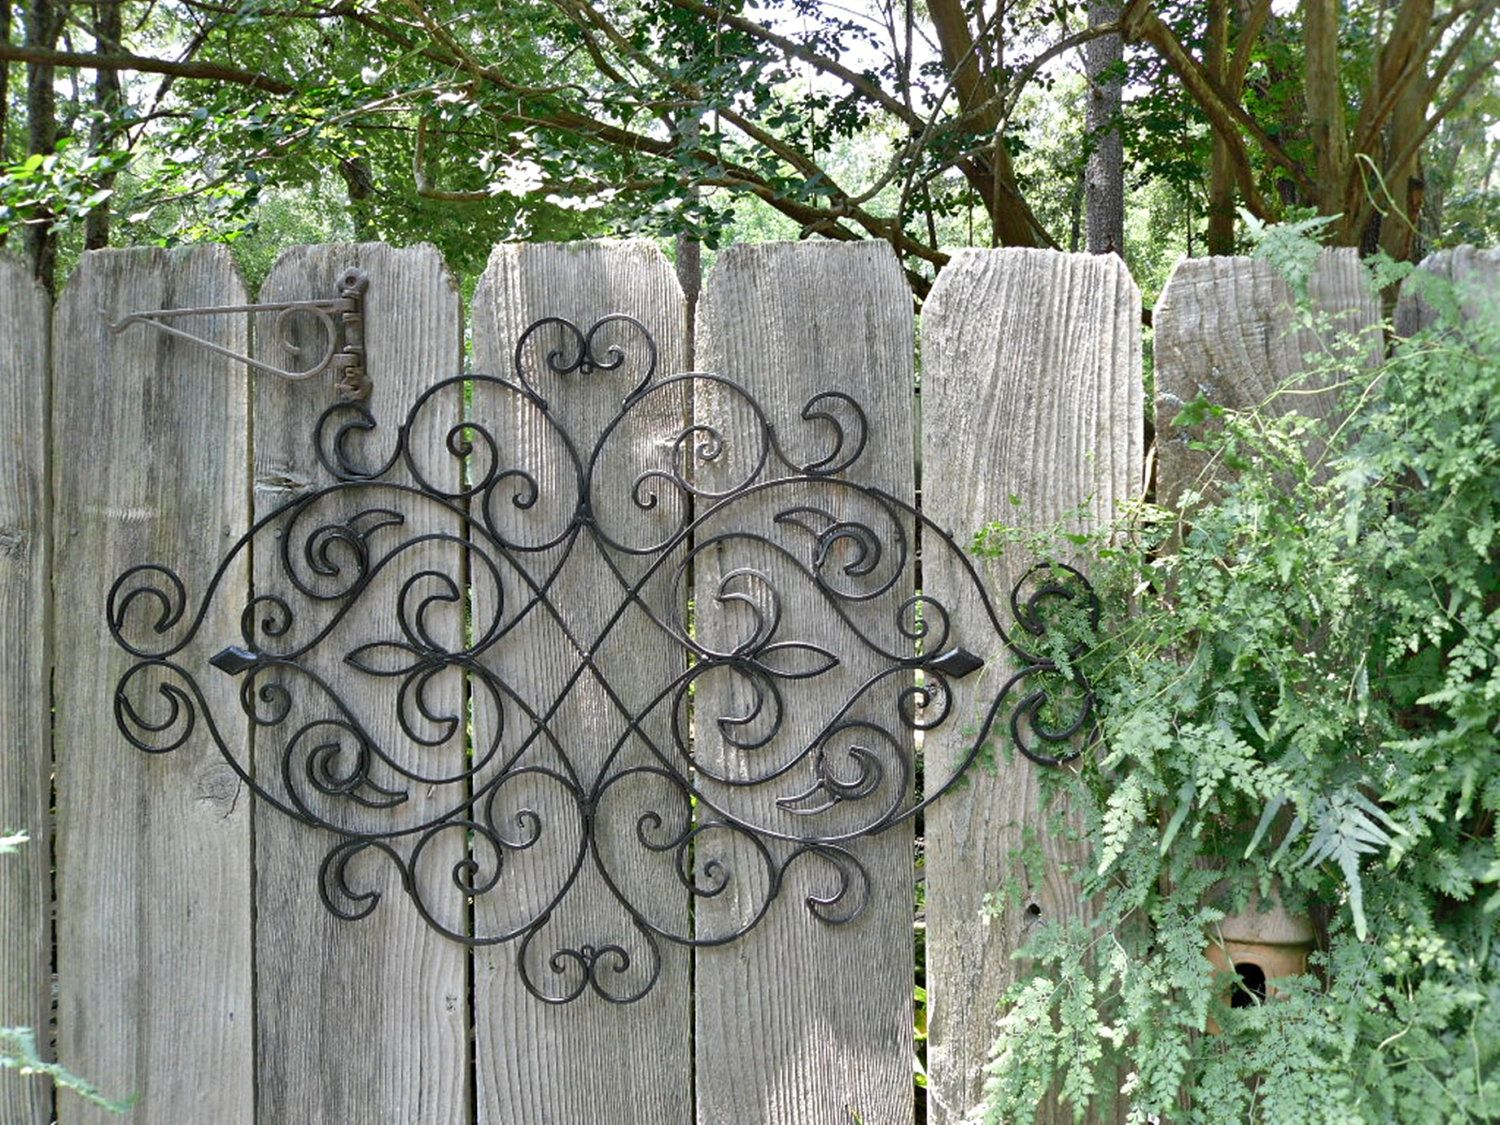 Wrought Iron Wall Decor Ideas Google Image Result For Httpimg3.etsystatic00005989046